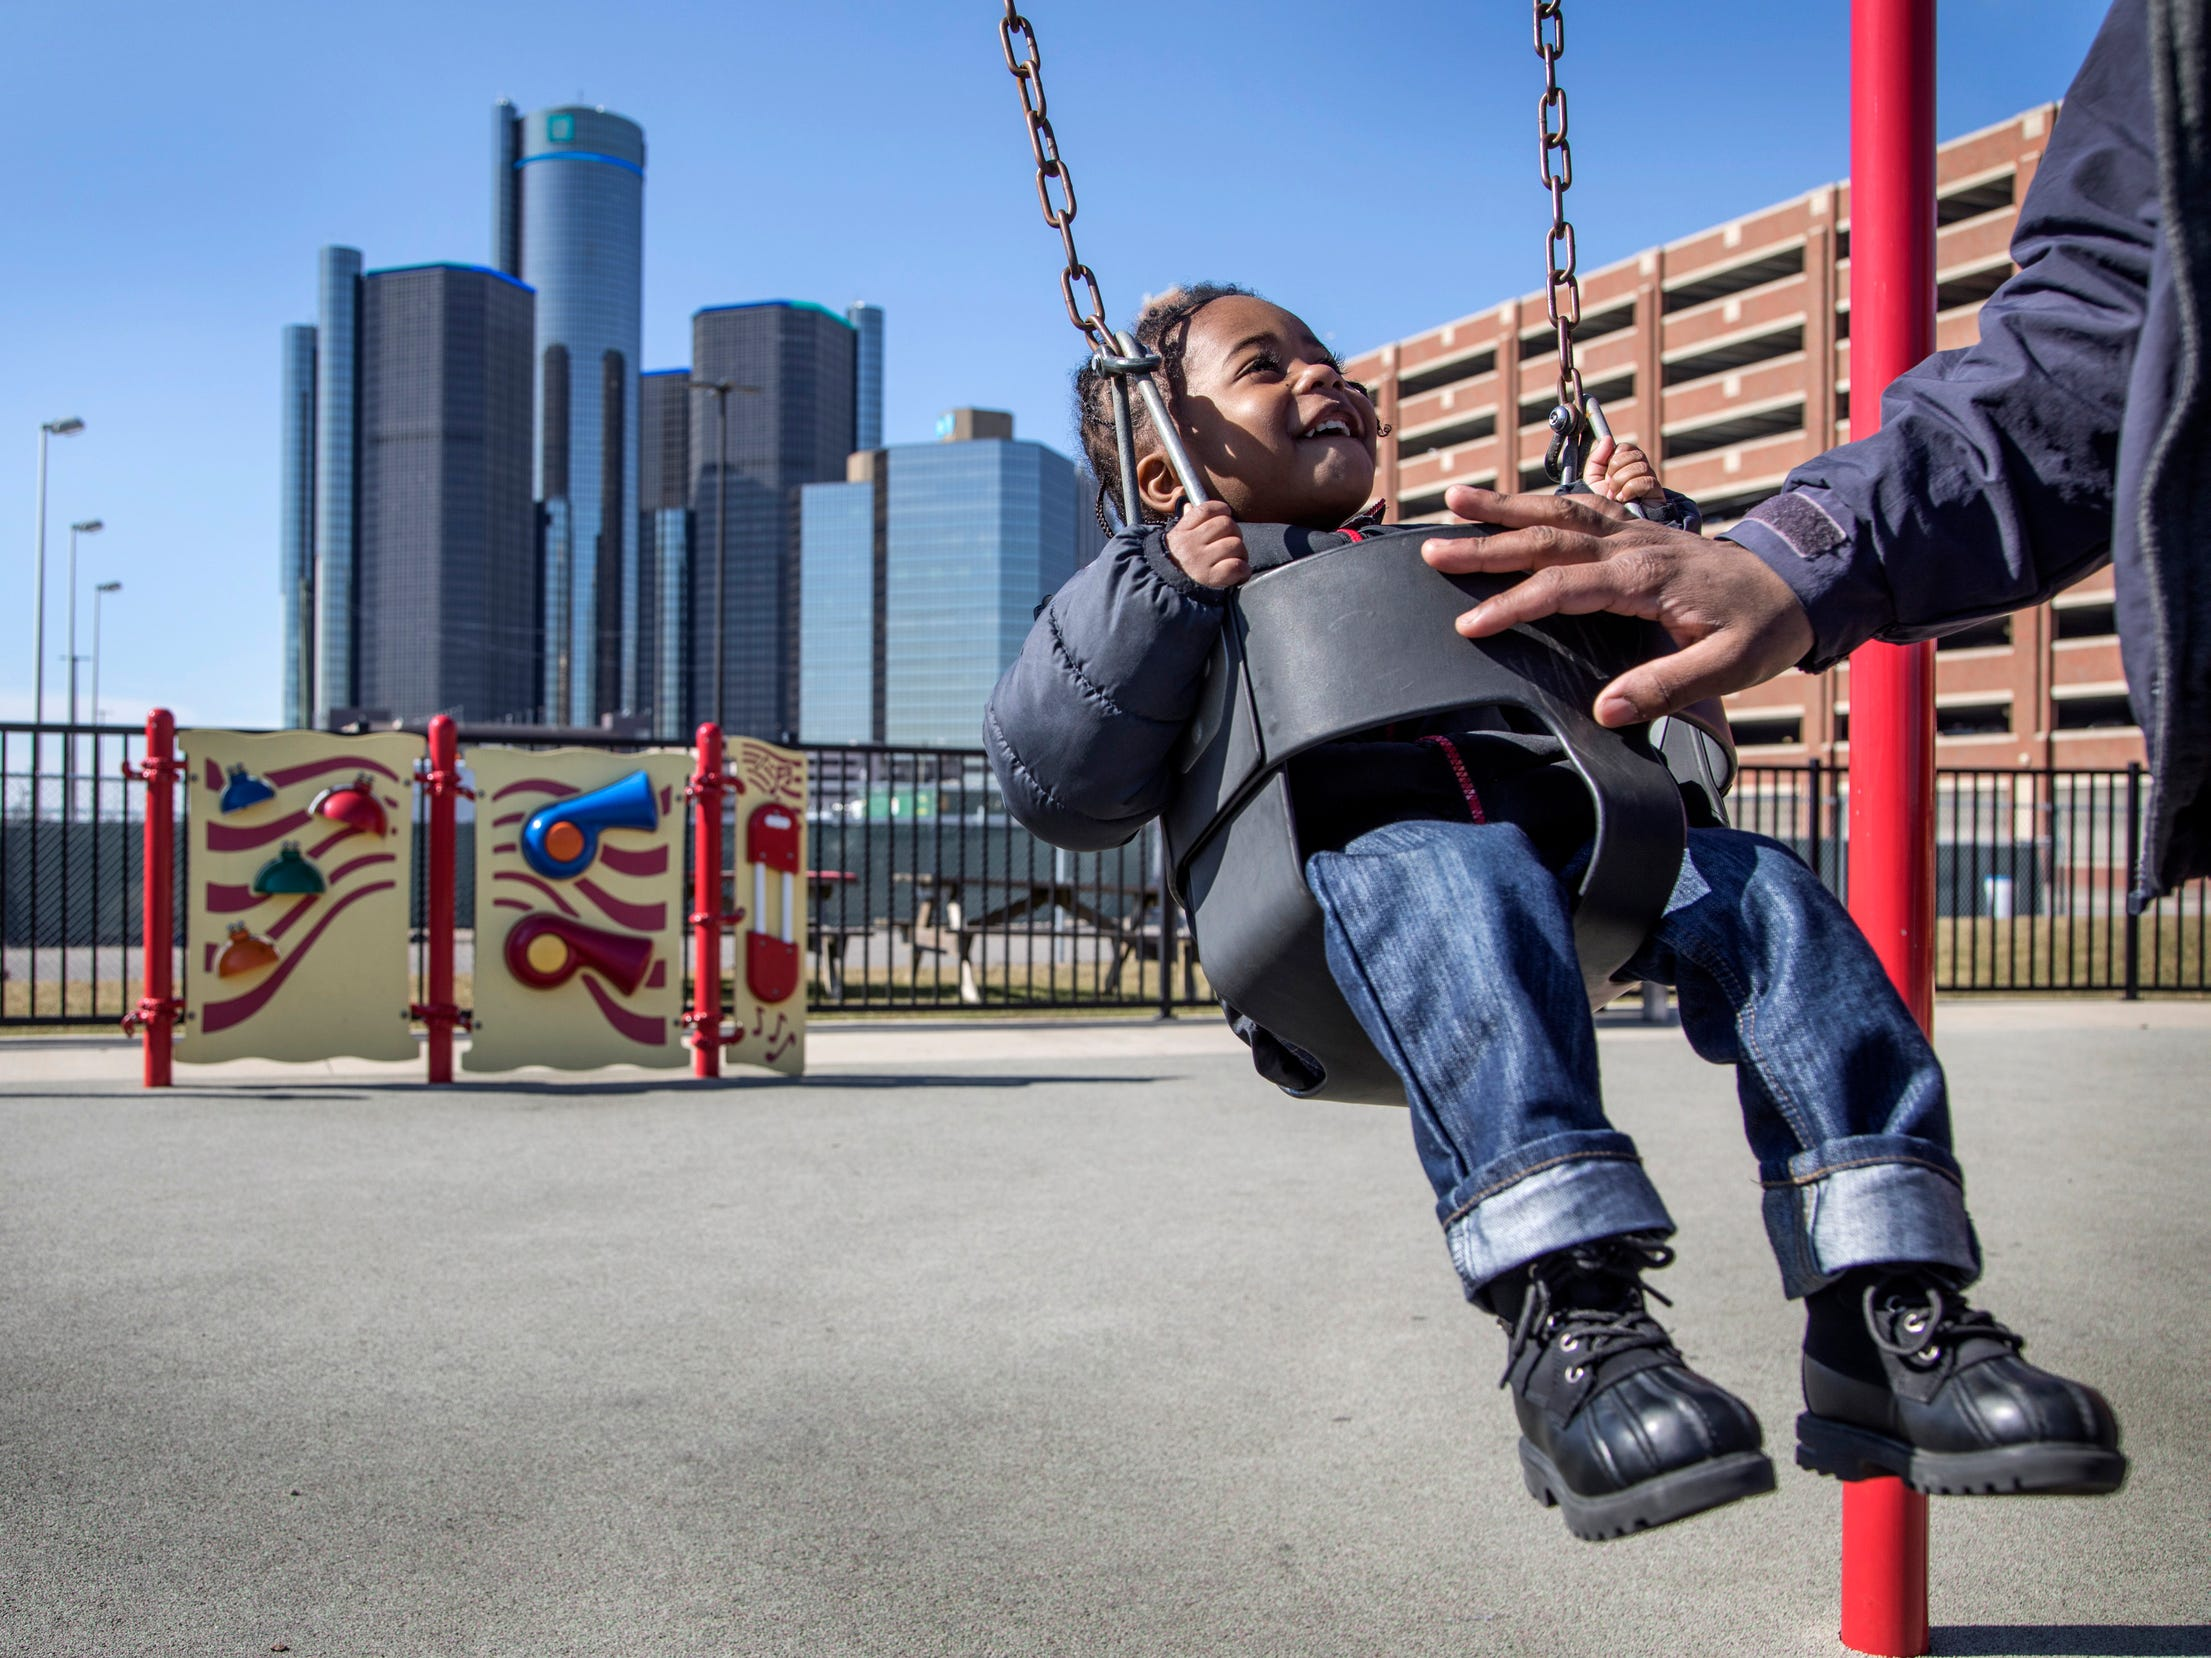 With near 60 degree temperatures Thomas King Jr. 2, of Detroit, smiles as he gets a push on the swing from his father Thomas King Sr. 25, as metro Detroiters enjoy the Detroit River Front Tuesday Feb. 27, 2018.